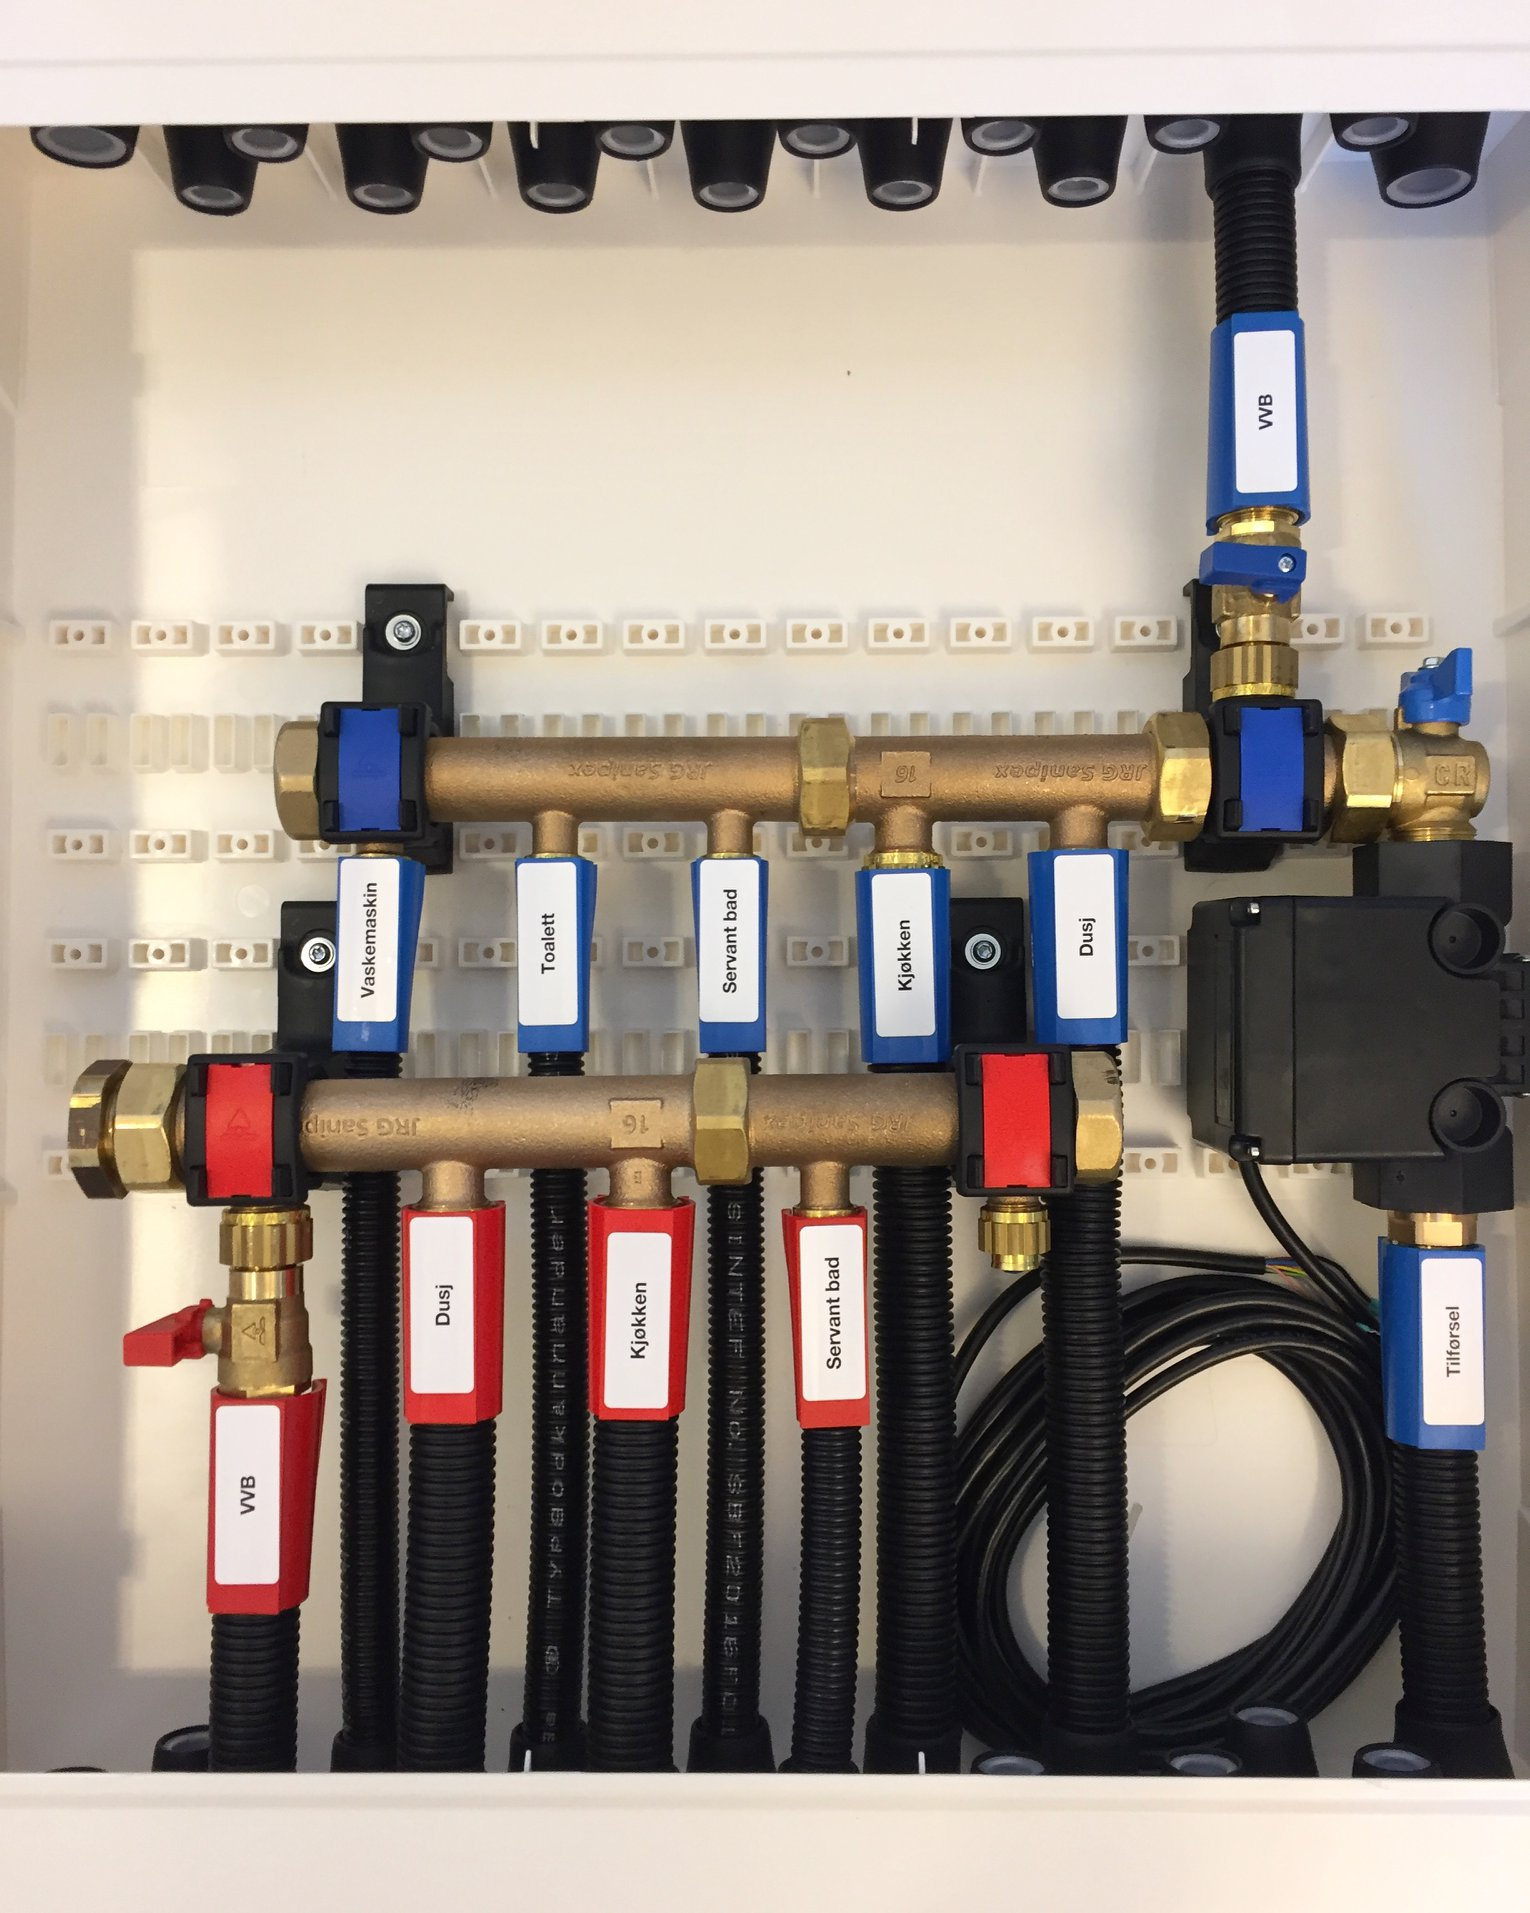 Inside a manifold cabinet, mounted correctly